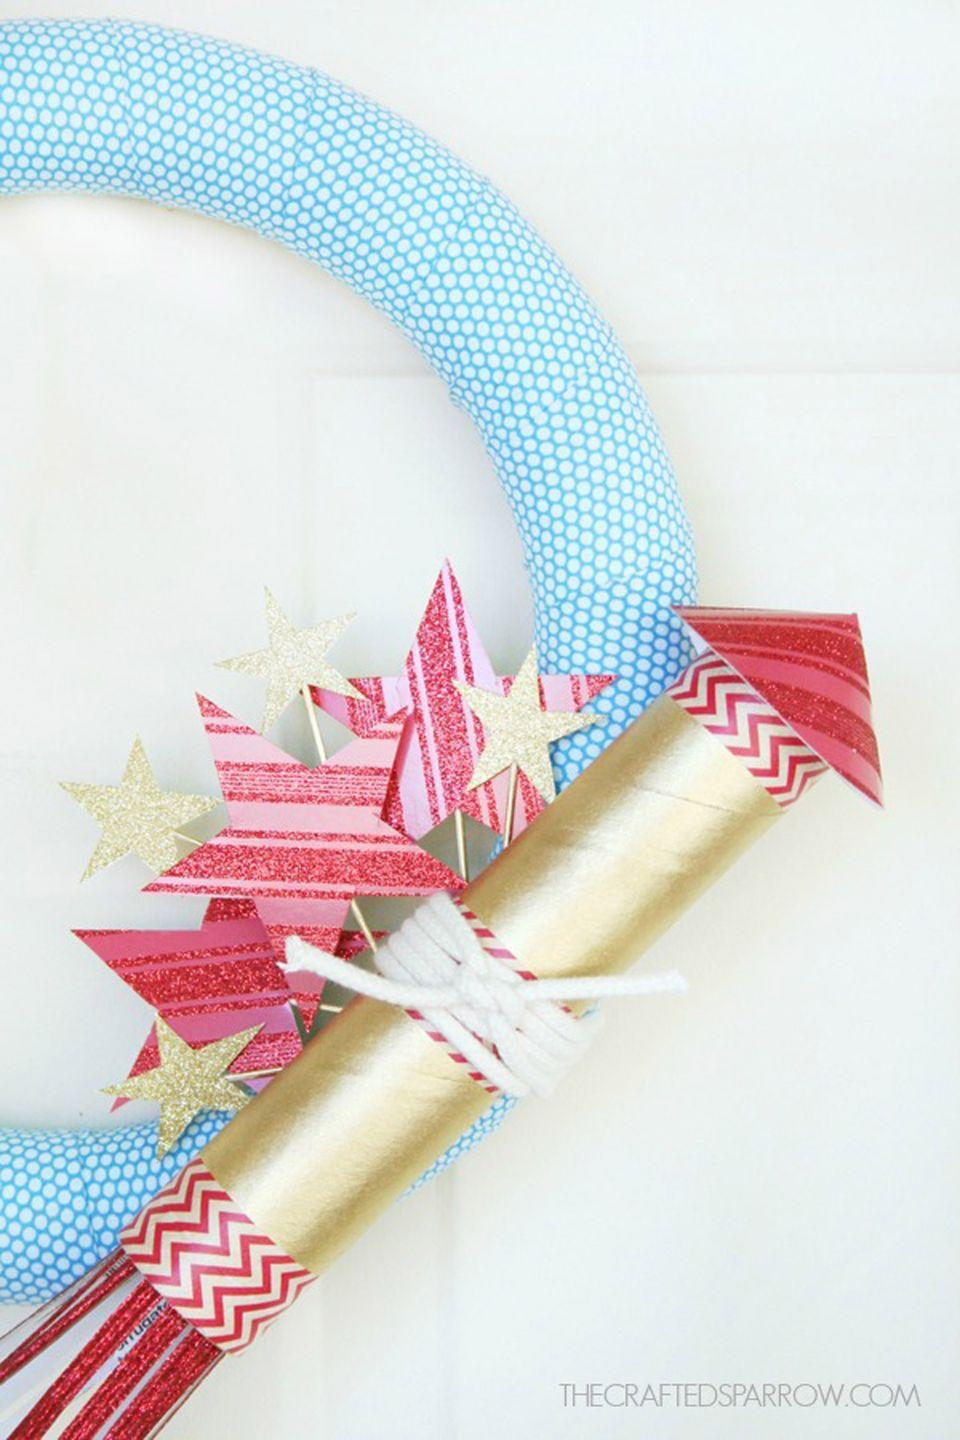 """<p>Blogger Rebecca writes her number one tip is to pin—not glue—the fabric on this foam wreath so it can be used for different holidays.</p><p><strong>Get the tutorial at <a href=""""http://www.thecraftedsparrow.com/2014/06/4th-july-wreath.html"""" rel=""""nofollow noopener"""" target=""""_blank"""" data-ylk=""""slk:Crafted Sparrow"""" class=""""link rapid-noclick-resp"""">Crafted Sparrow</a>.</strong></p><p><a class=""""link rapid-noclick-resp"""" href=""""https://www.amazon.com/Rust-Oleum-245221-Universal-Surface-Metallic/dp/B0016HLAH8/ref=sr_1_1?tag=syn-yahoo-20&ascsubtag=%5Bartid%7C10050.g.4464%5Bsrc%7Cyahoo-us"""" rel=""""nofollow noopener"""" target=""""_blank"""" data-ylk=""""slk:SHOP GOLD SPRAY PAINT"""">SHOP GOLD SPRAY PAINT</a></p>"""